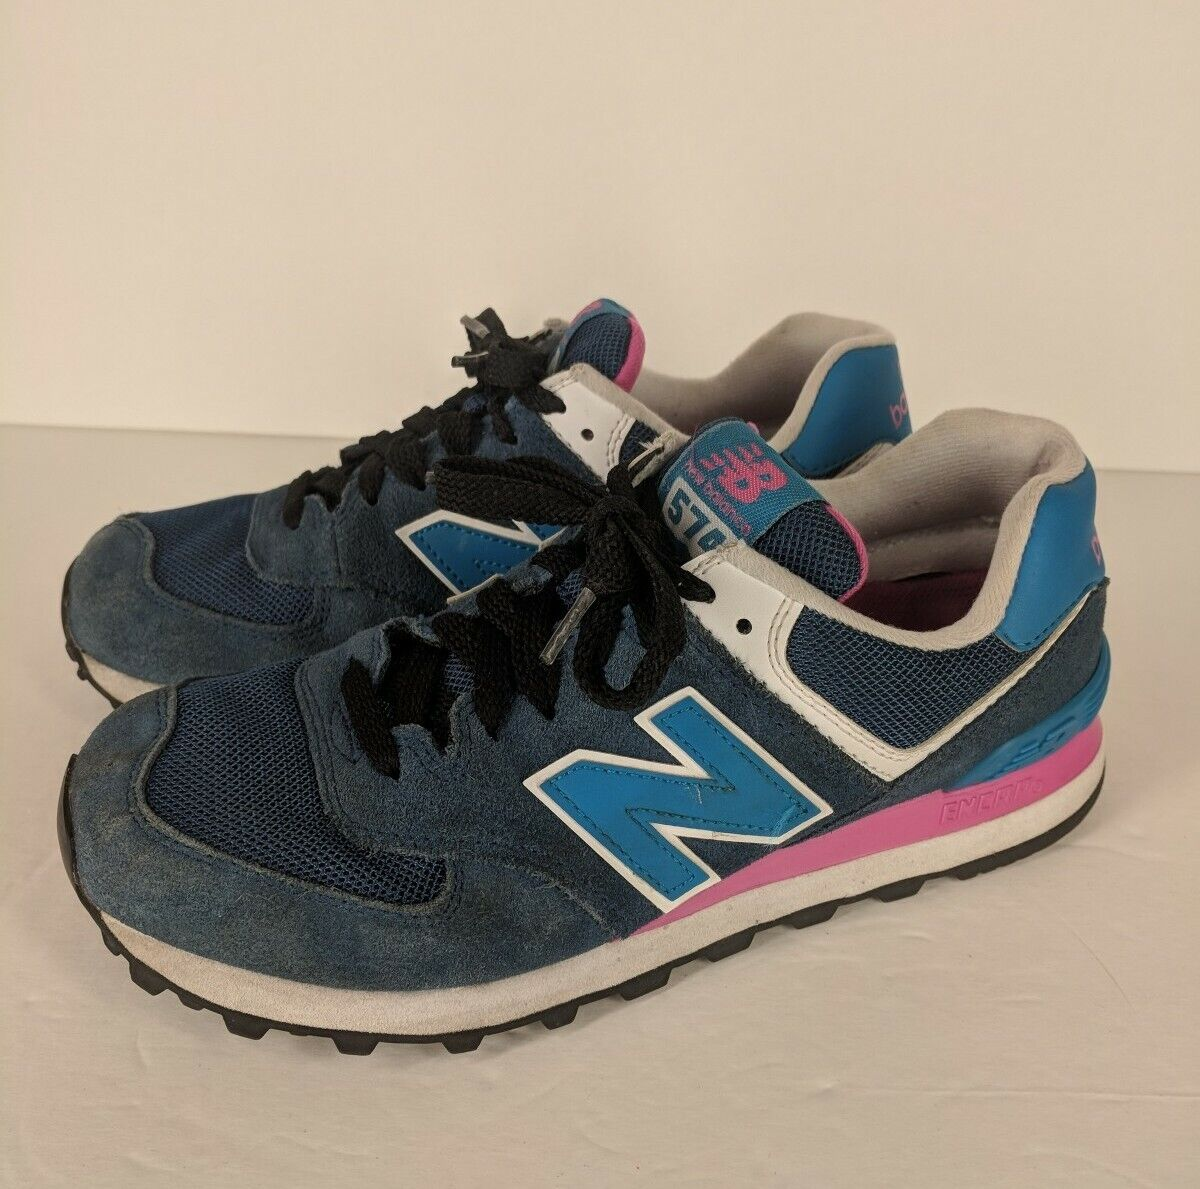 New Balance 874~Womens 8.5~Athletic Shoes Blue Pink